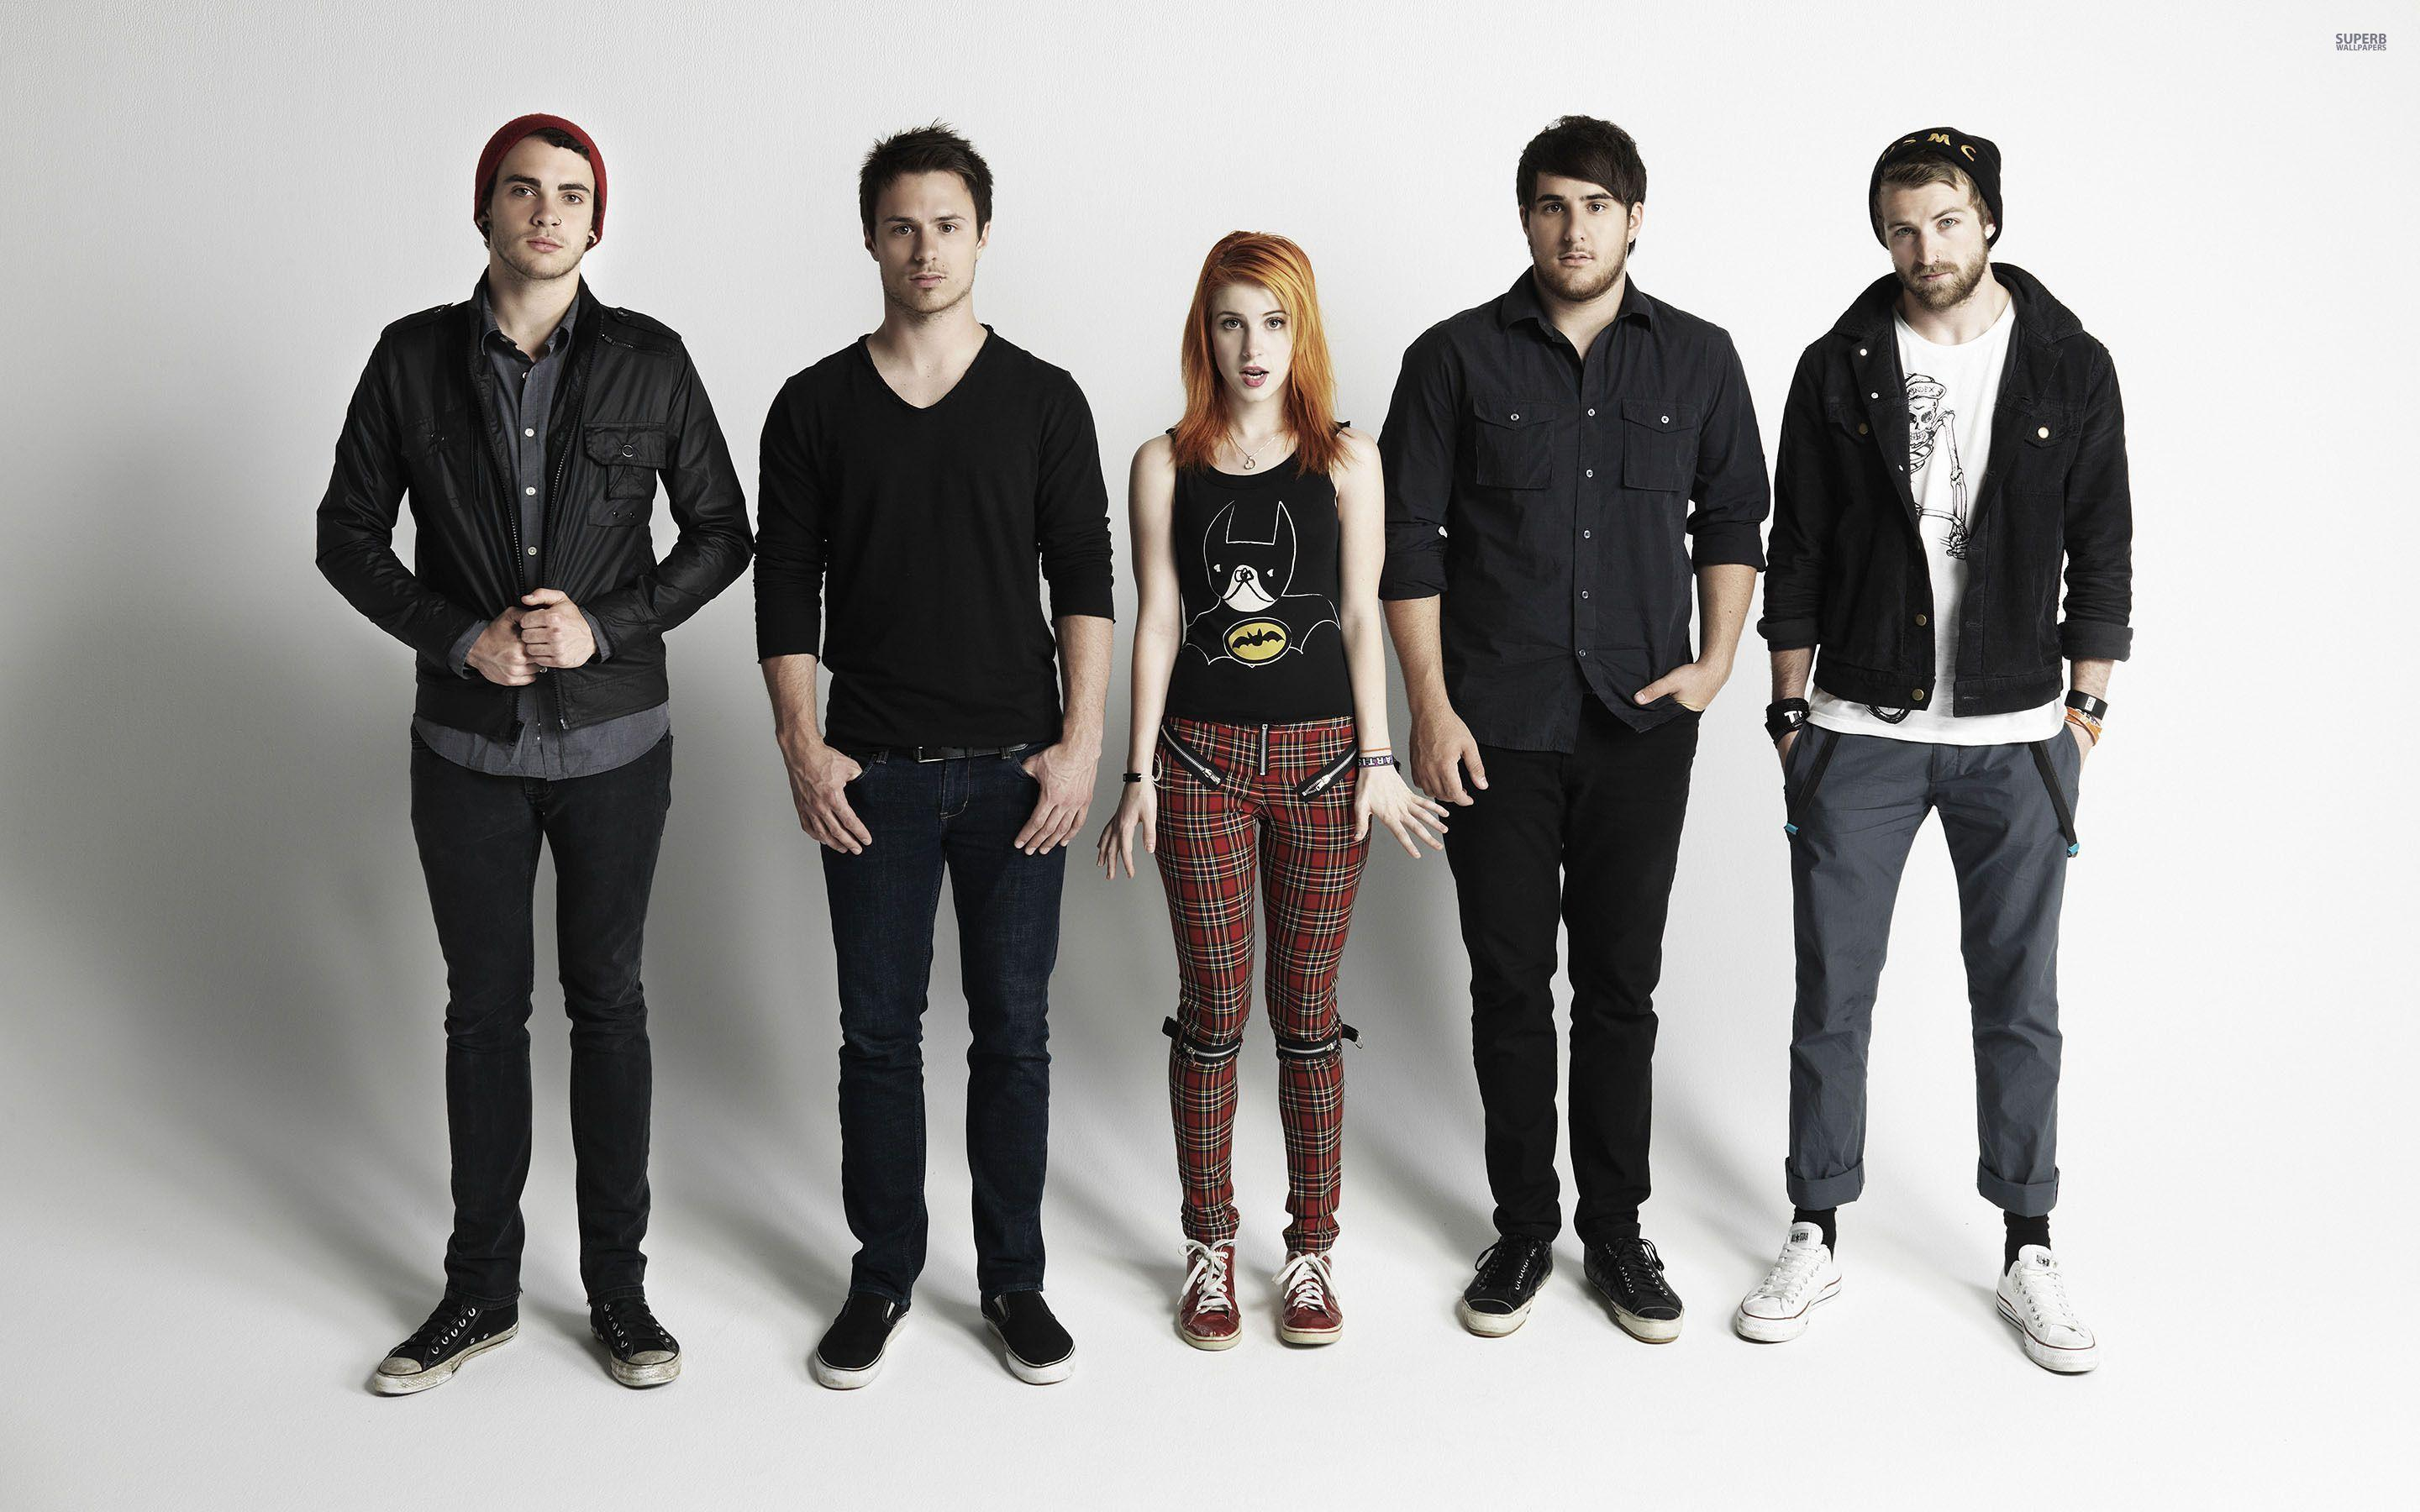 Paramore 2015 Wallpapers - Wallpaper Cave